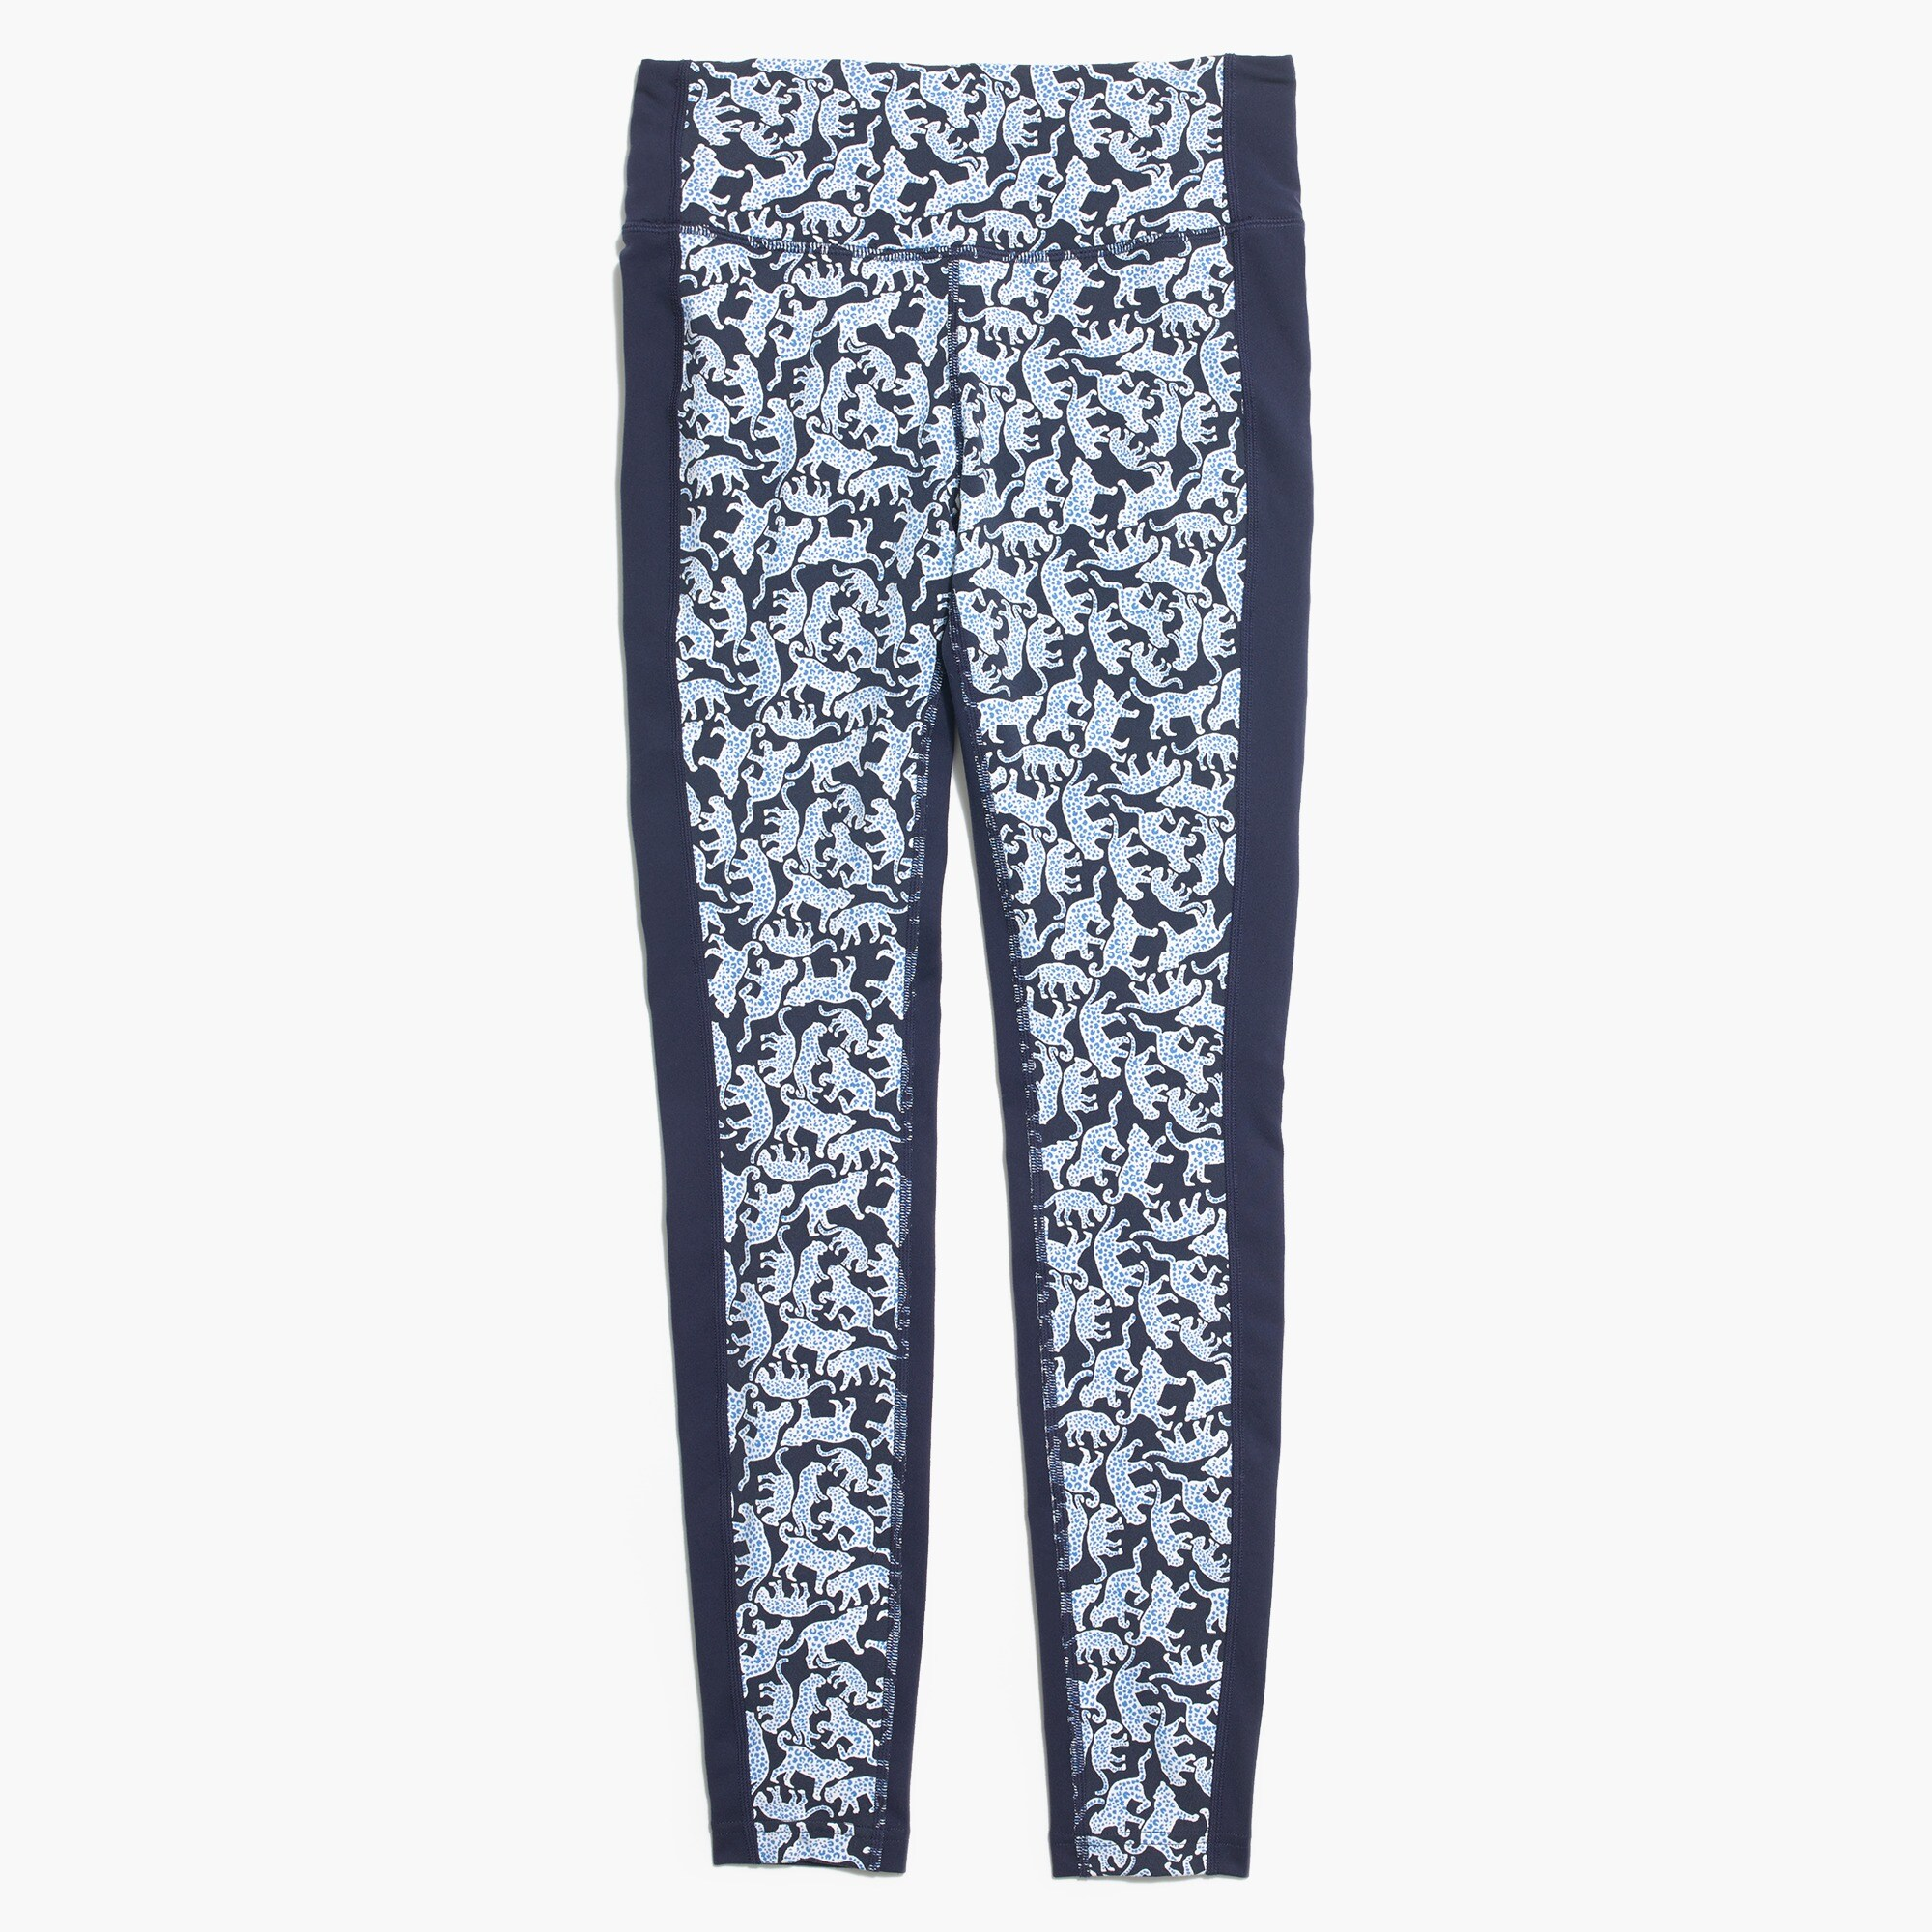 Image 1 for New Balance ® for J.Crew high waisted performance leggings in Drake's jaguar print